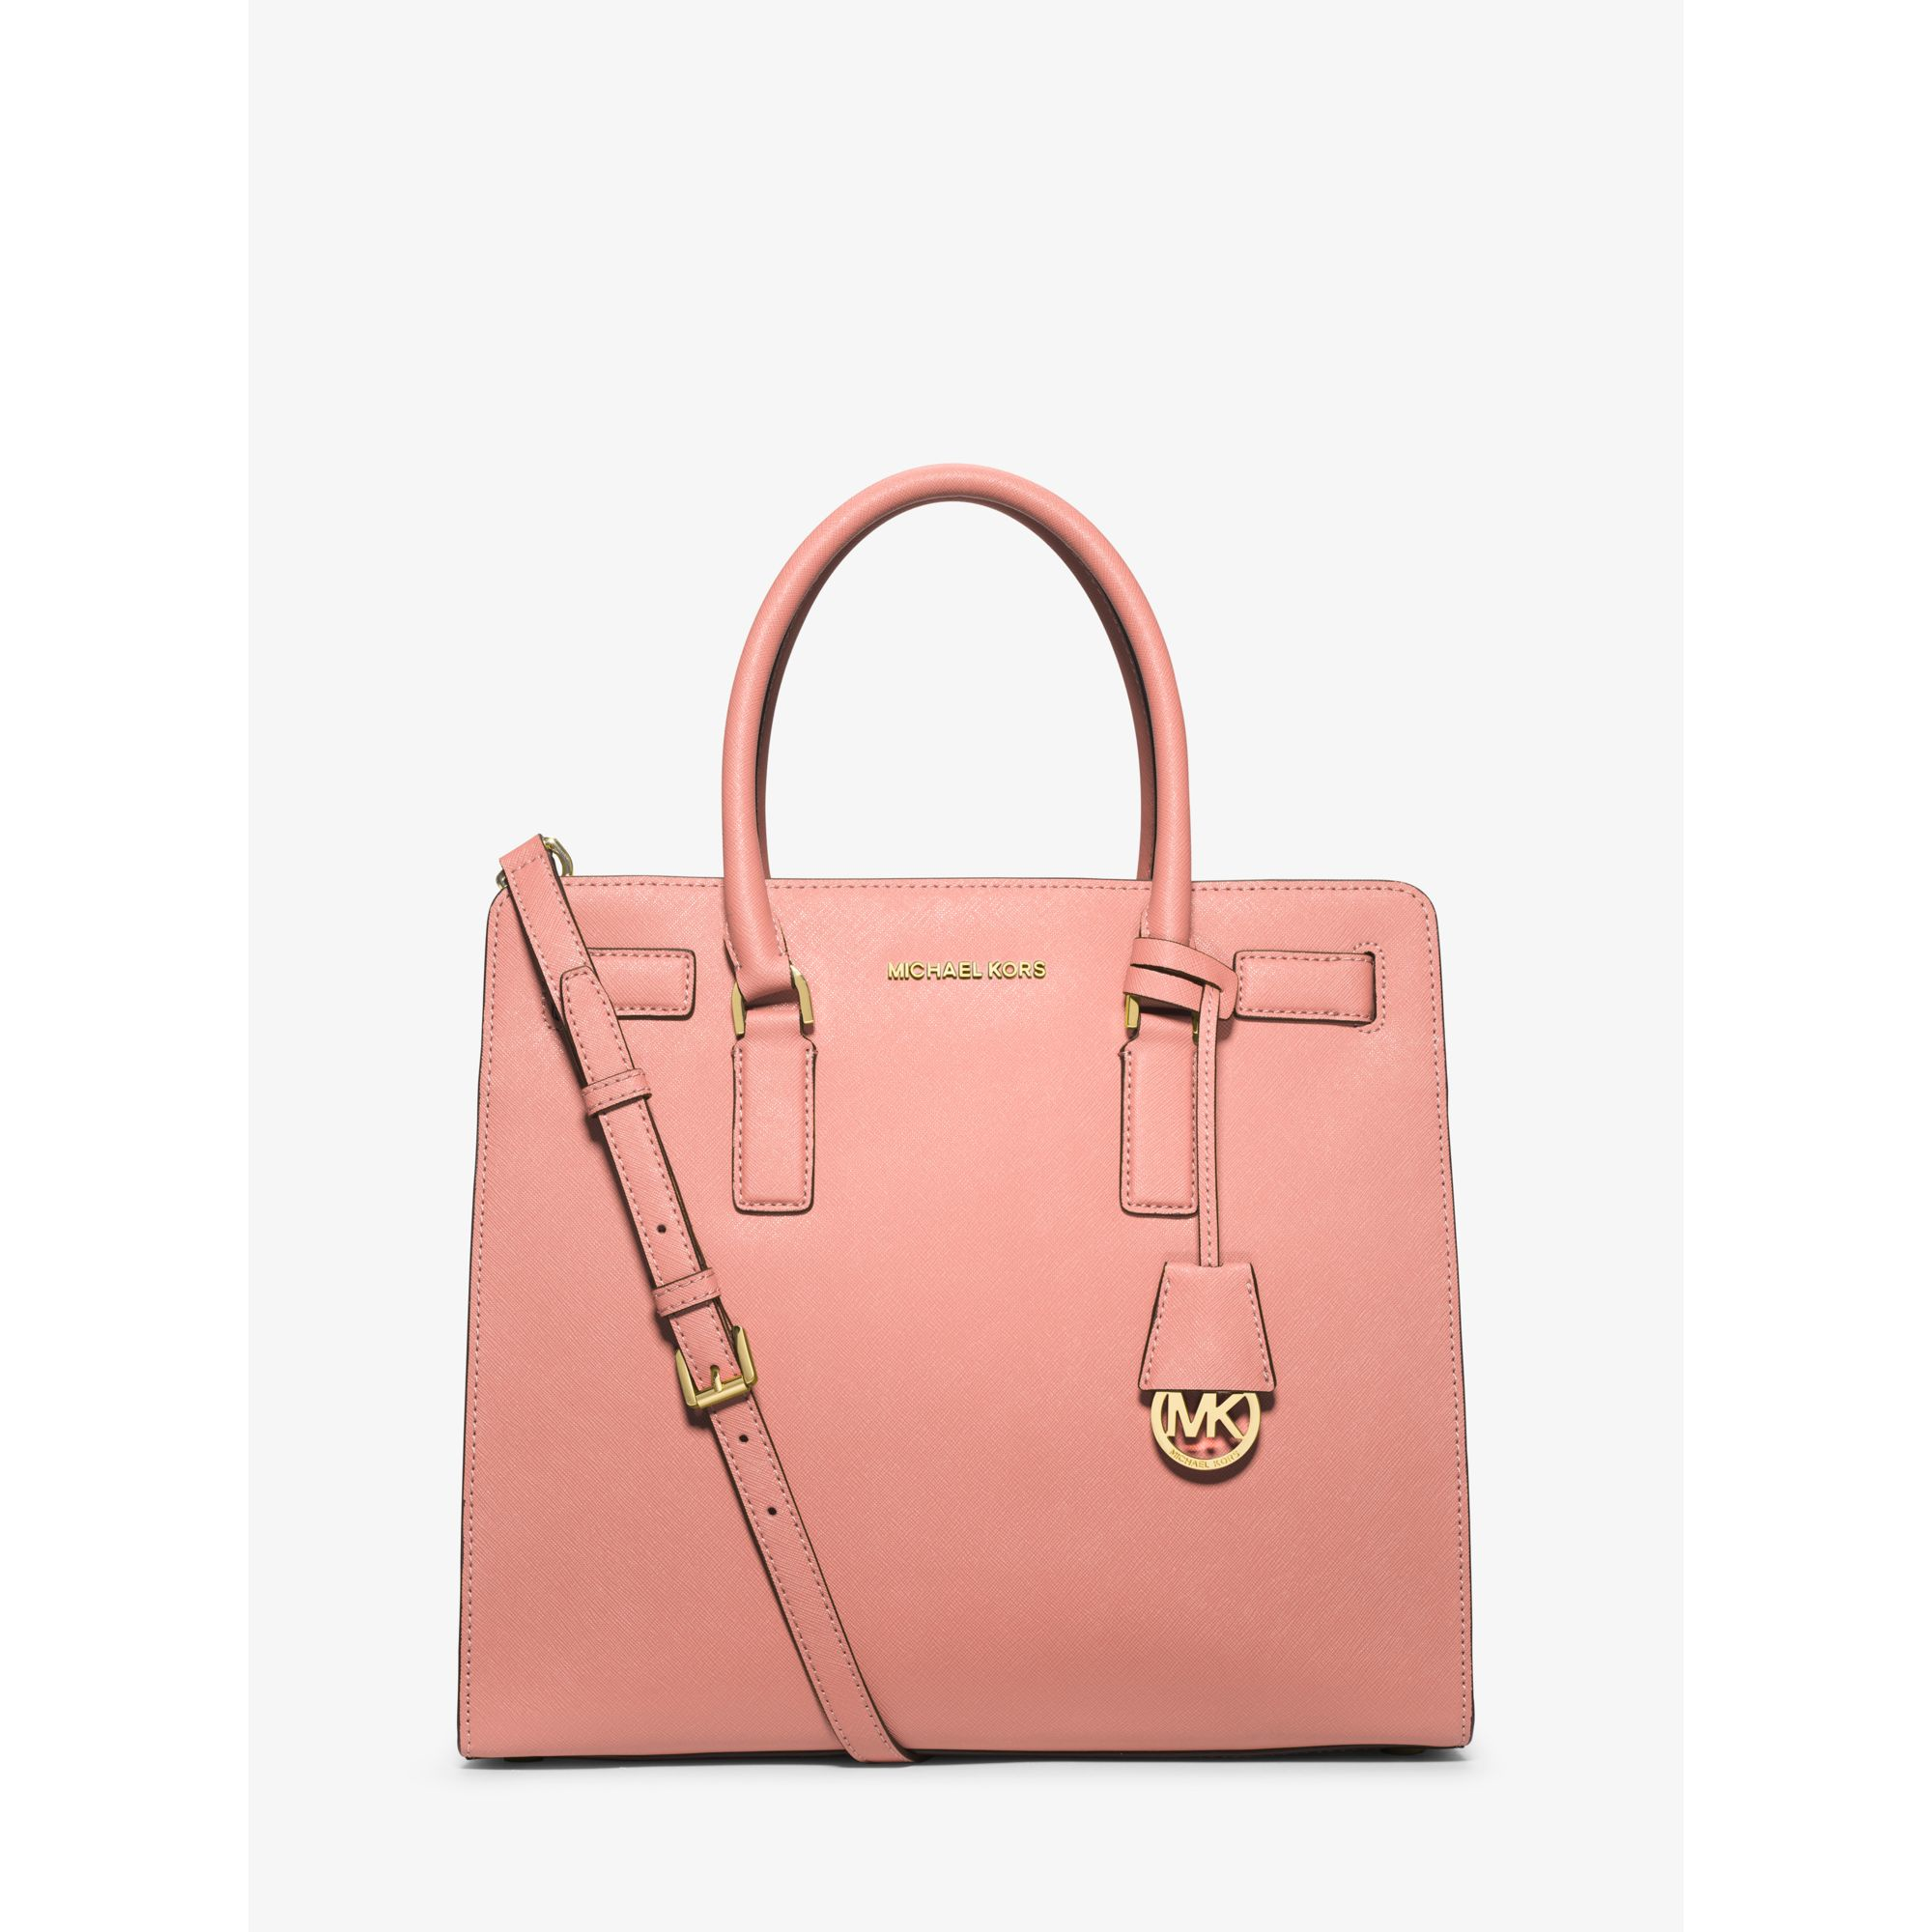 7028689343d3 Lyst - Michael Kors Dillon Large Saffiano Leather Satchel in Pink